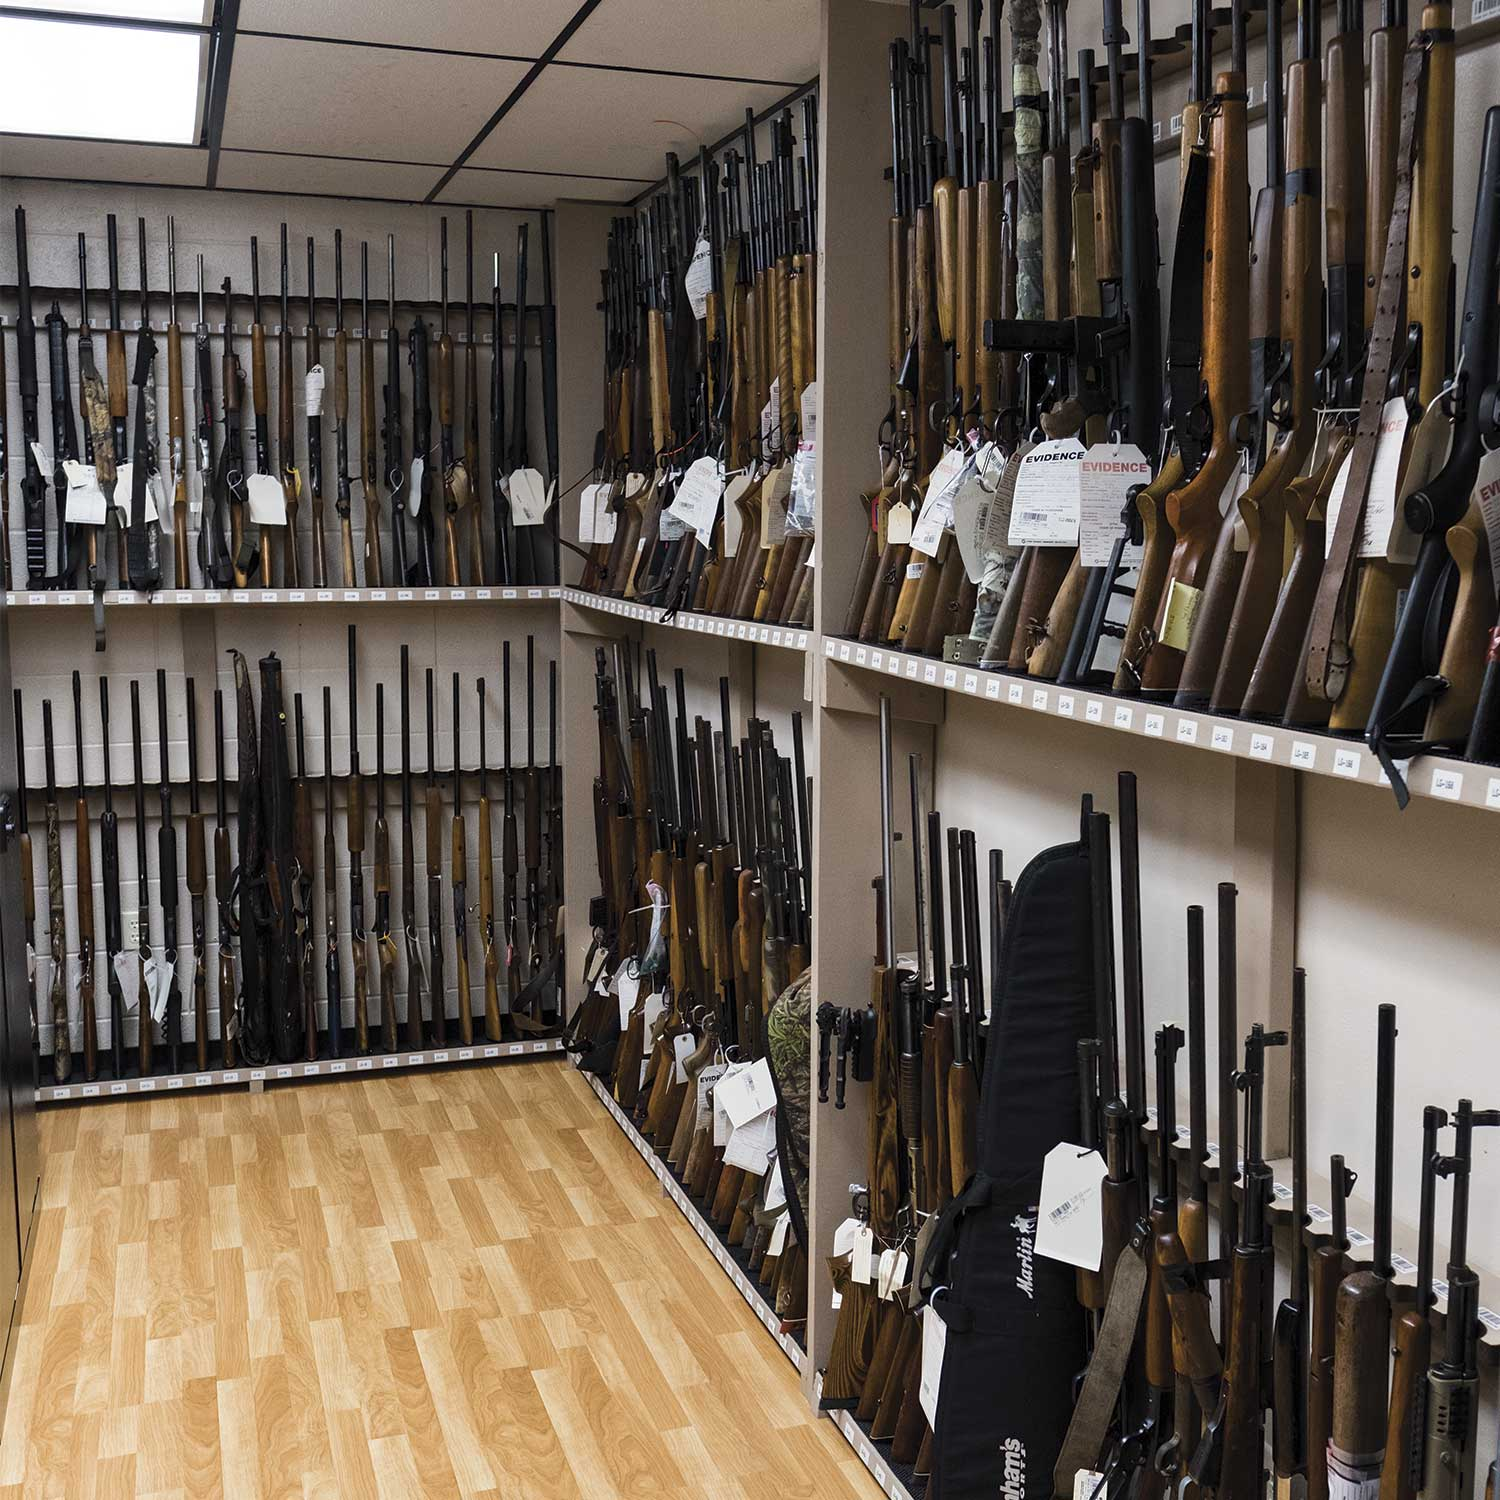 The Pulaski County Sheriff Office's property and evidence room also features a sizable room dedicated for firearms. (Photo by Jim Robertson)